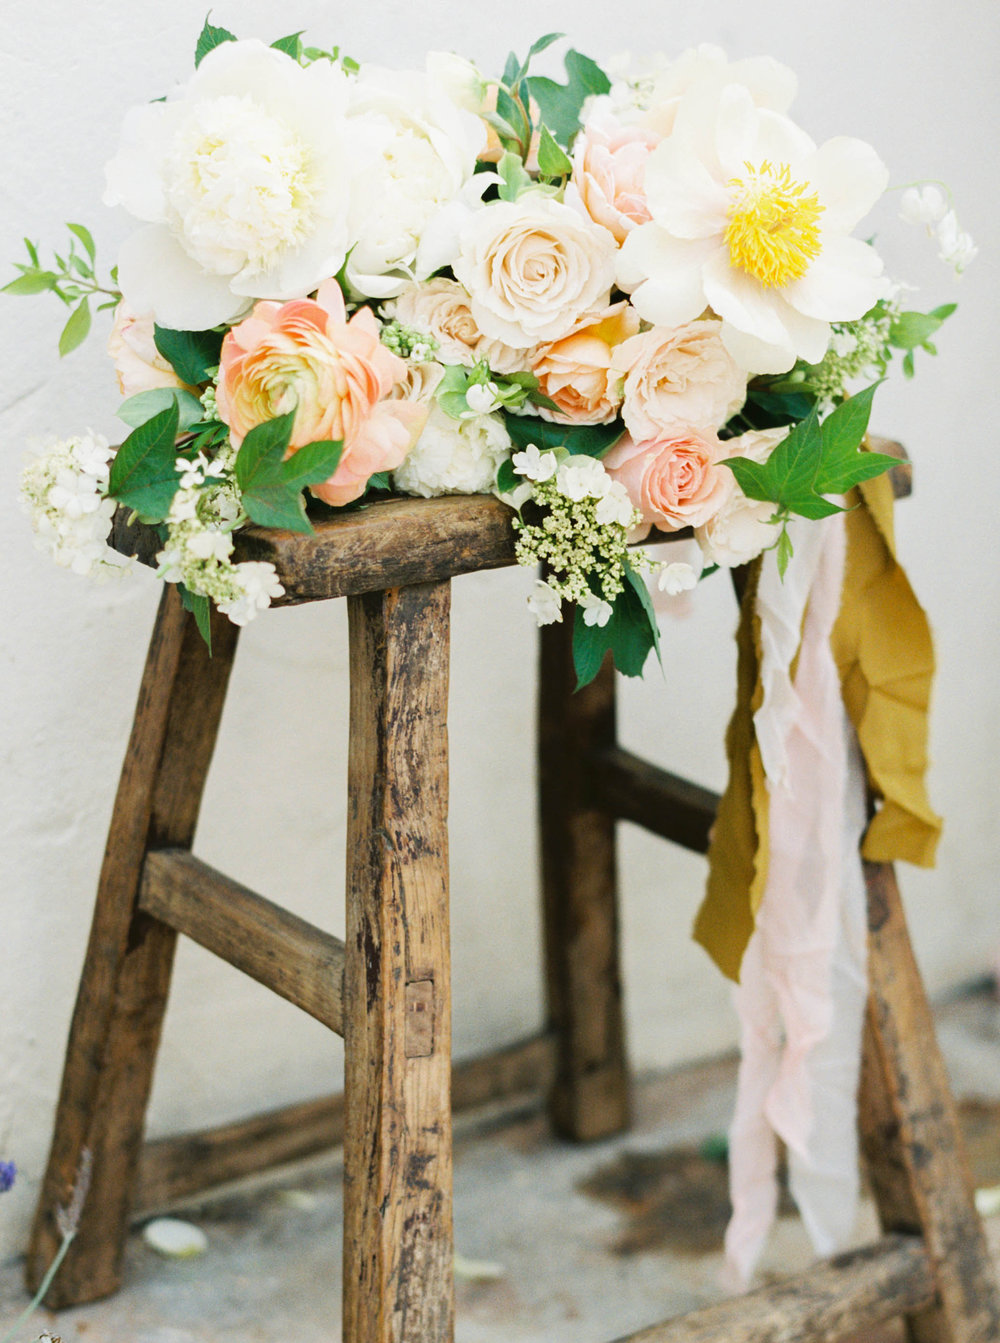 spring wedding bouquet with peonies and ranunculus.jpg